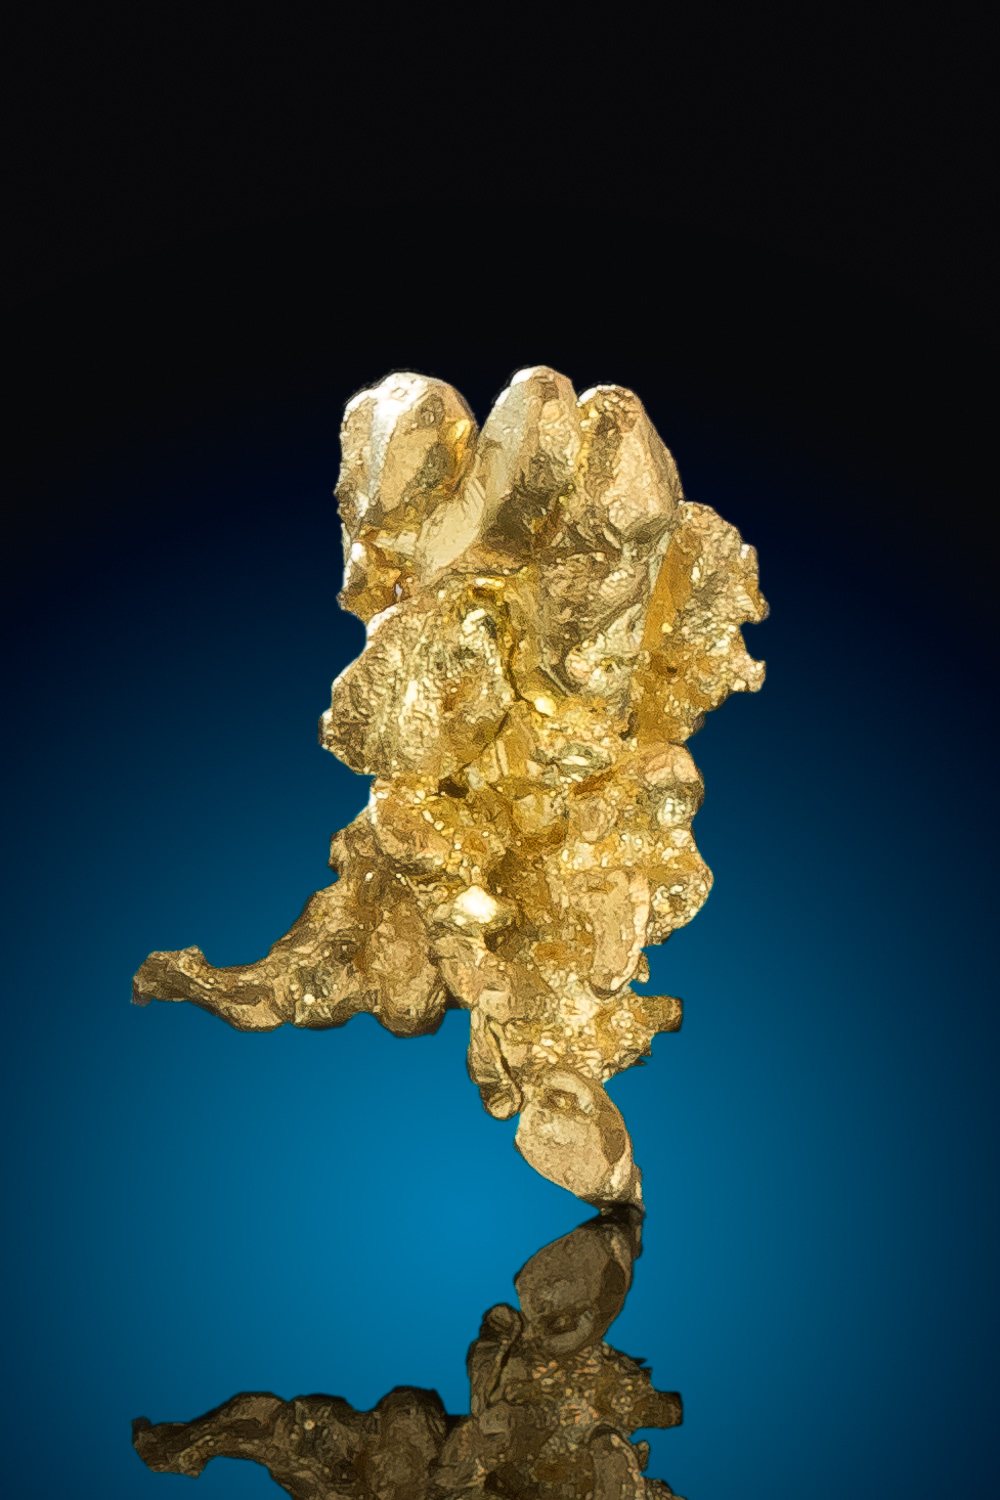 Intricate Natural Crystalline Gold Nugget - Eagles Nest